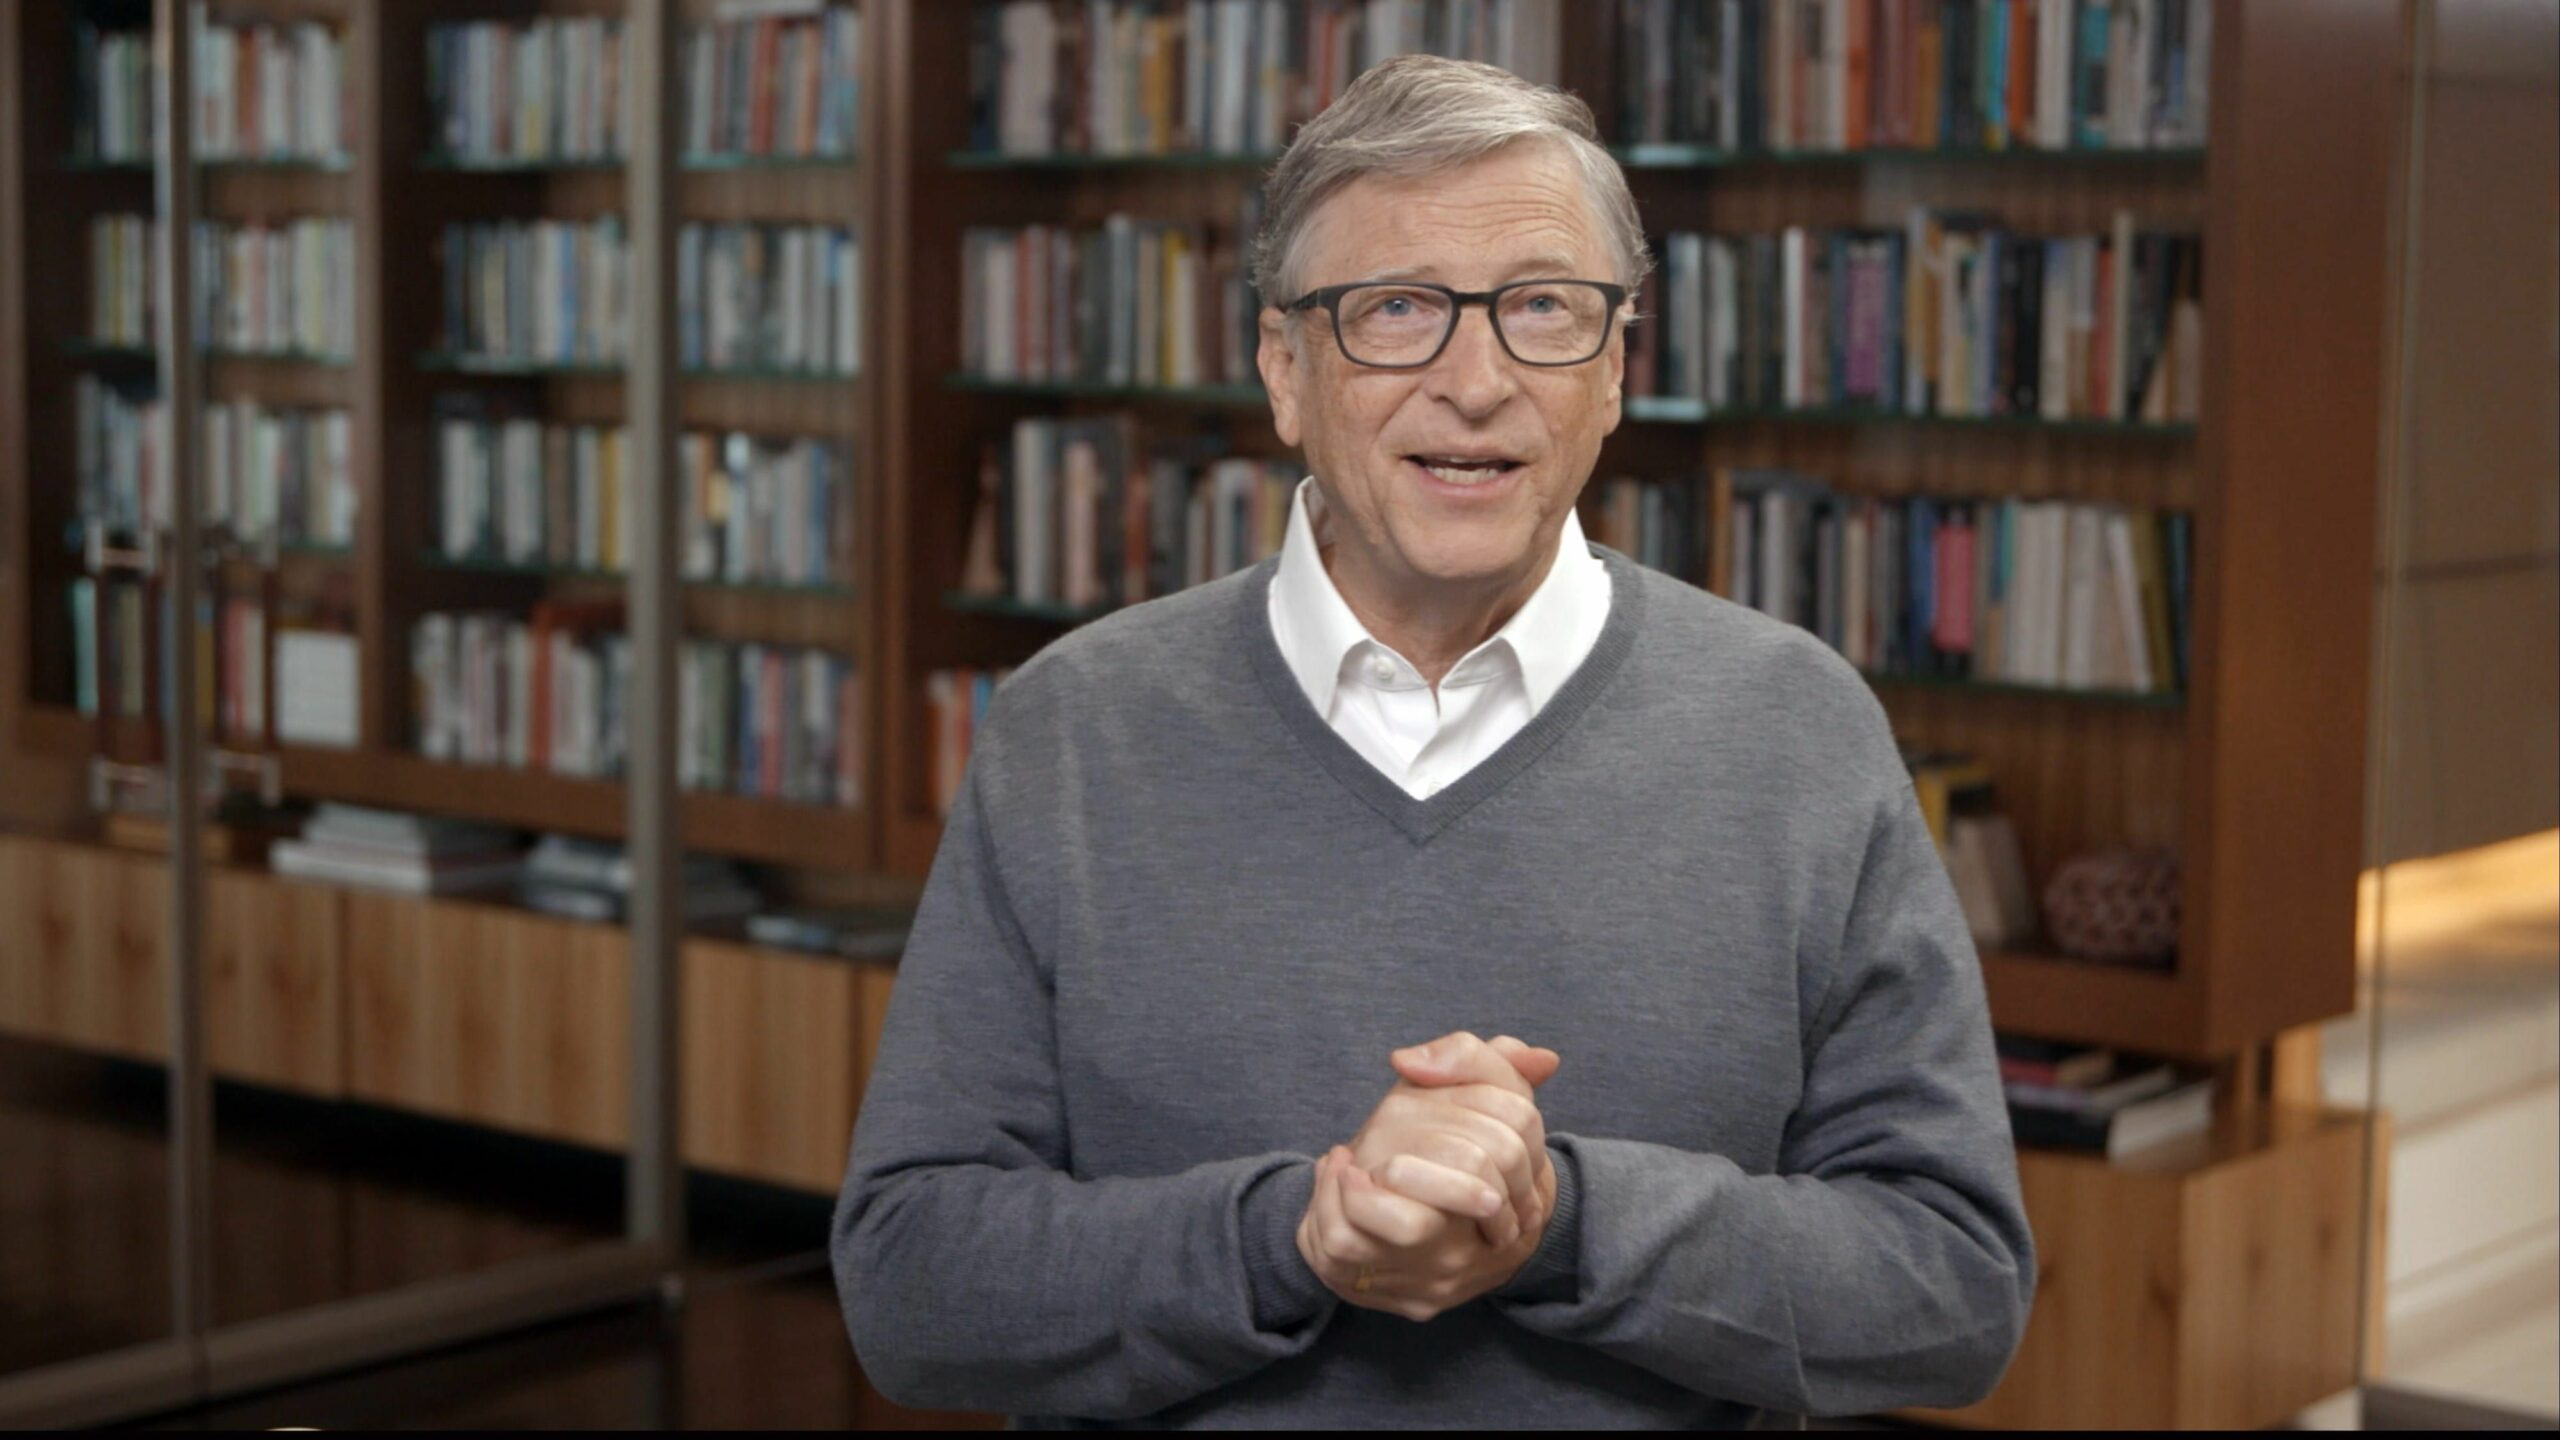 Bill Gates: COVID-19 Has Worsened Inequality and Weakened Our Preparedness for the Next Pandemic